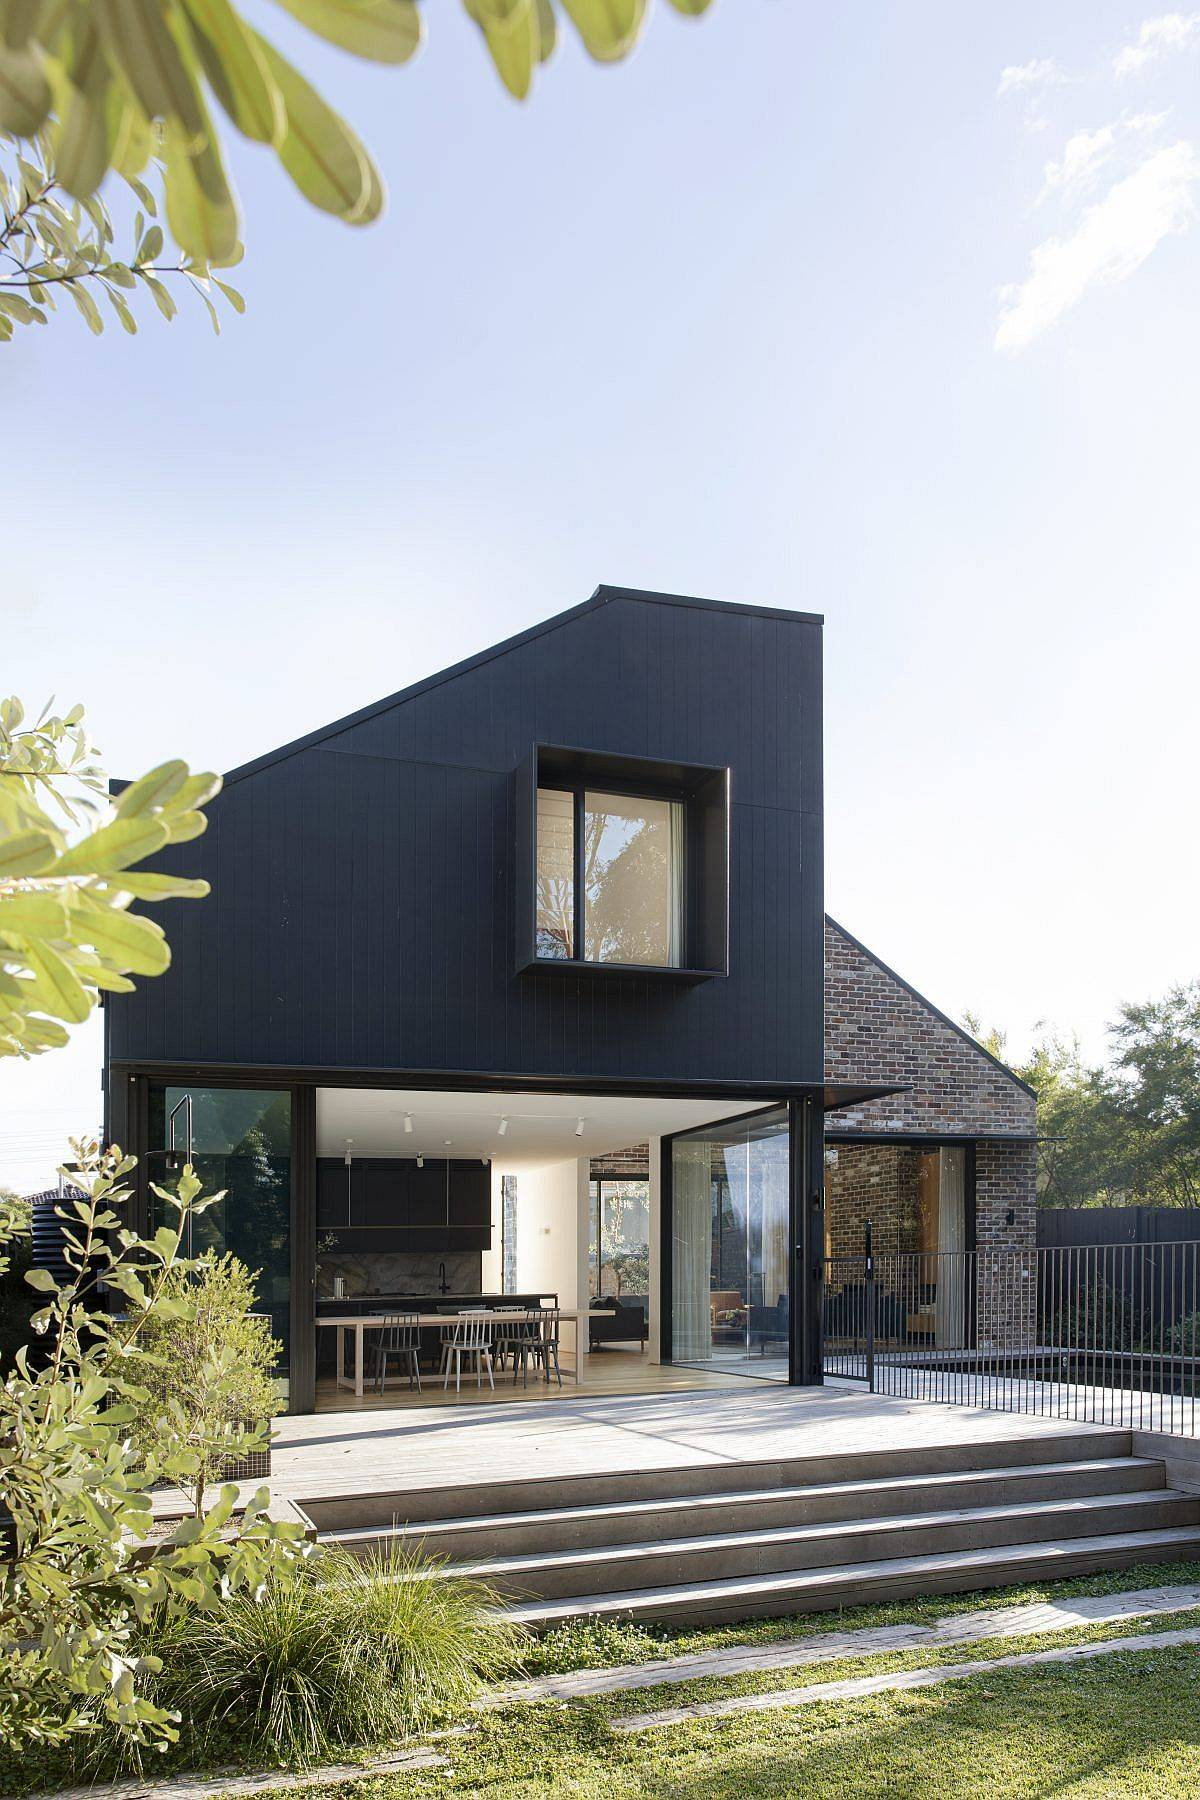 Ample-garden-area-and-a-pool-extend-the-living-area-outdoors-at-this-federation-home-49445